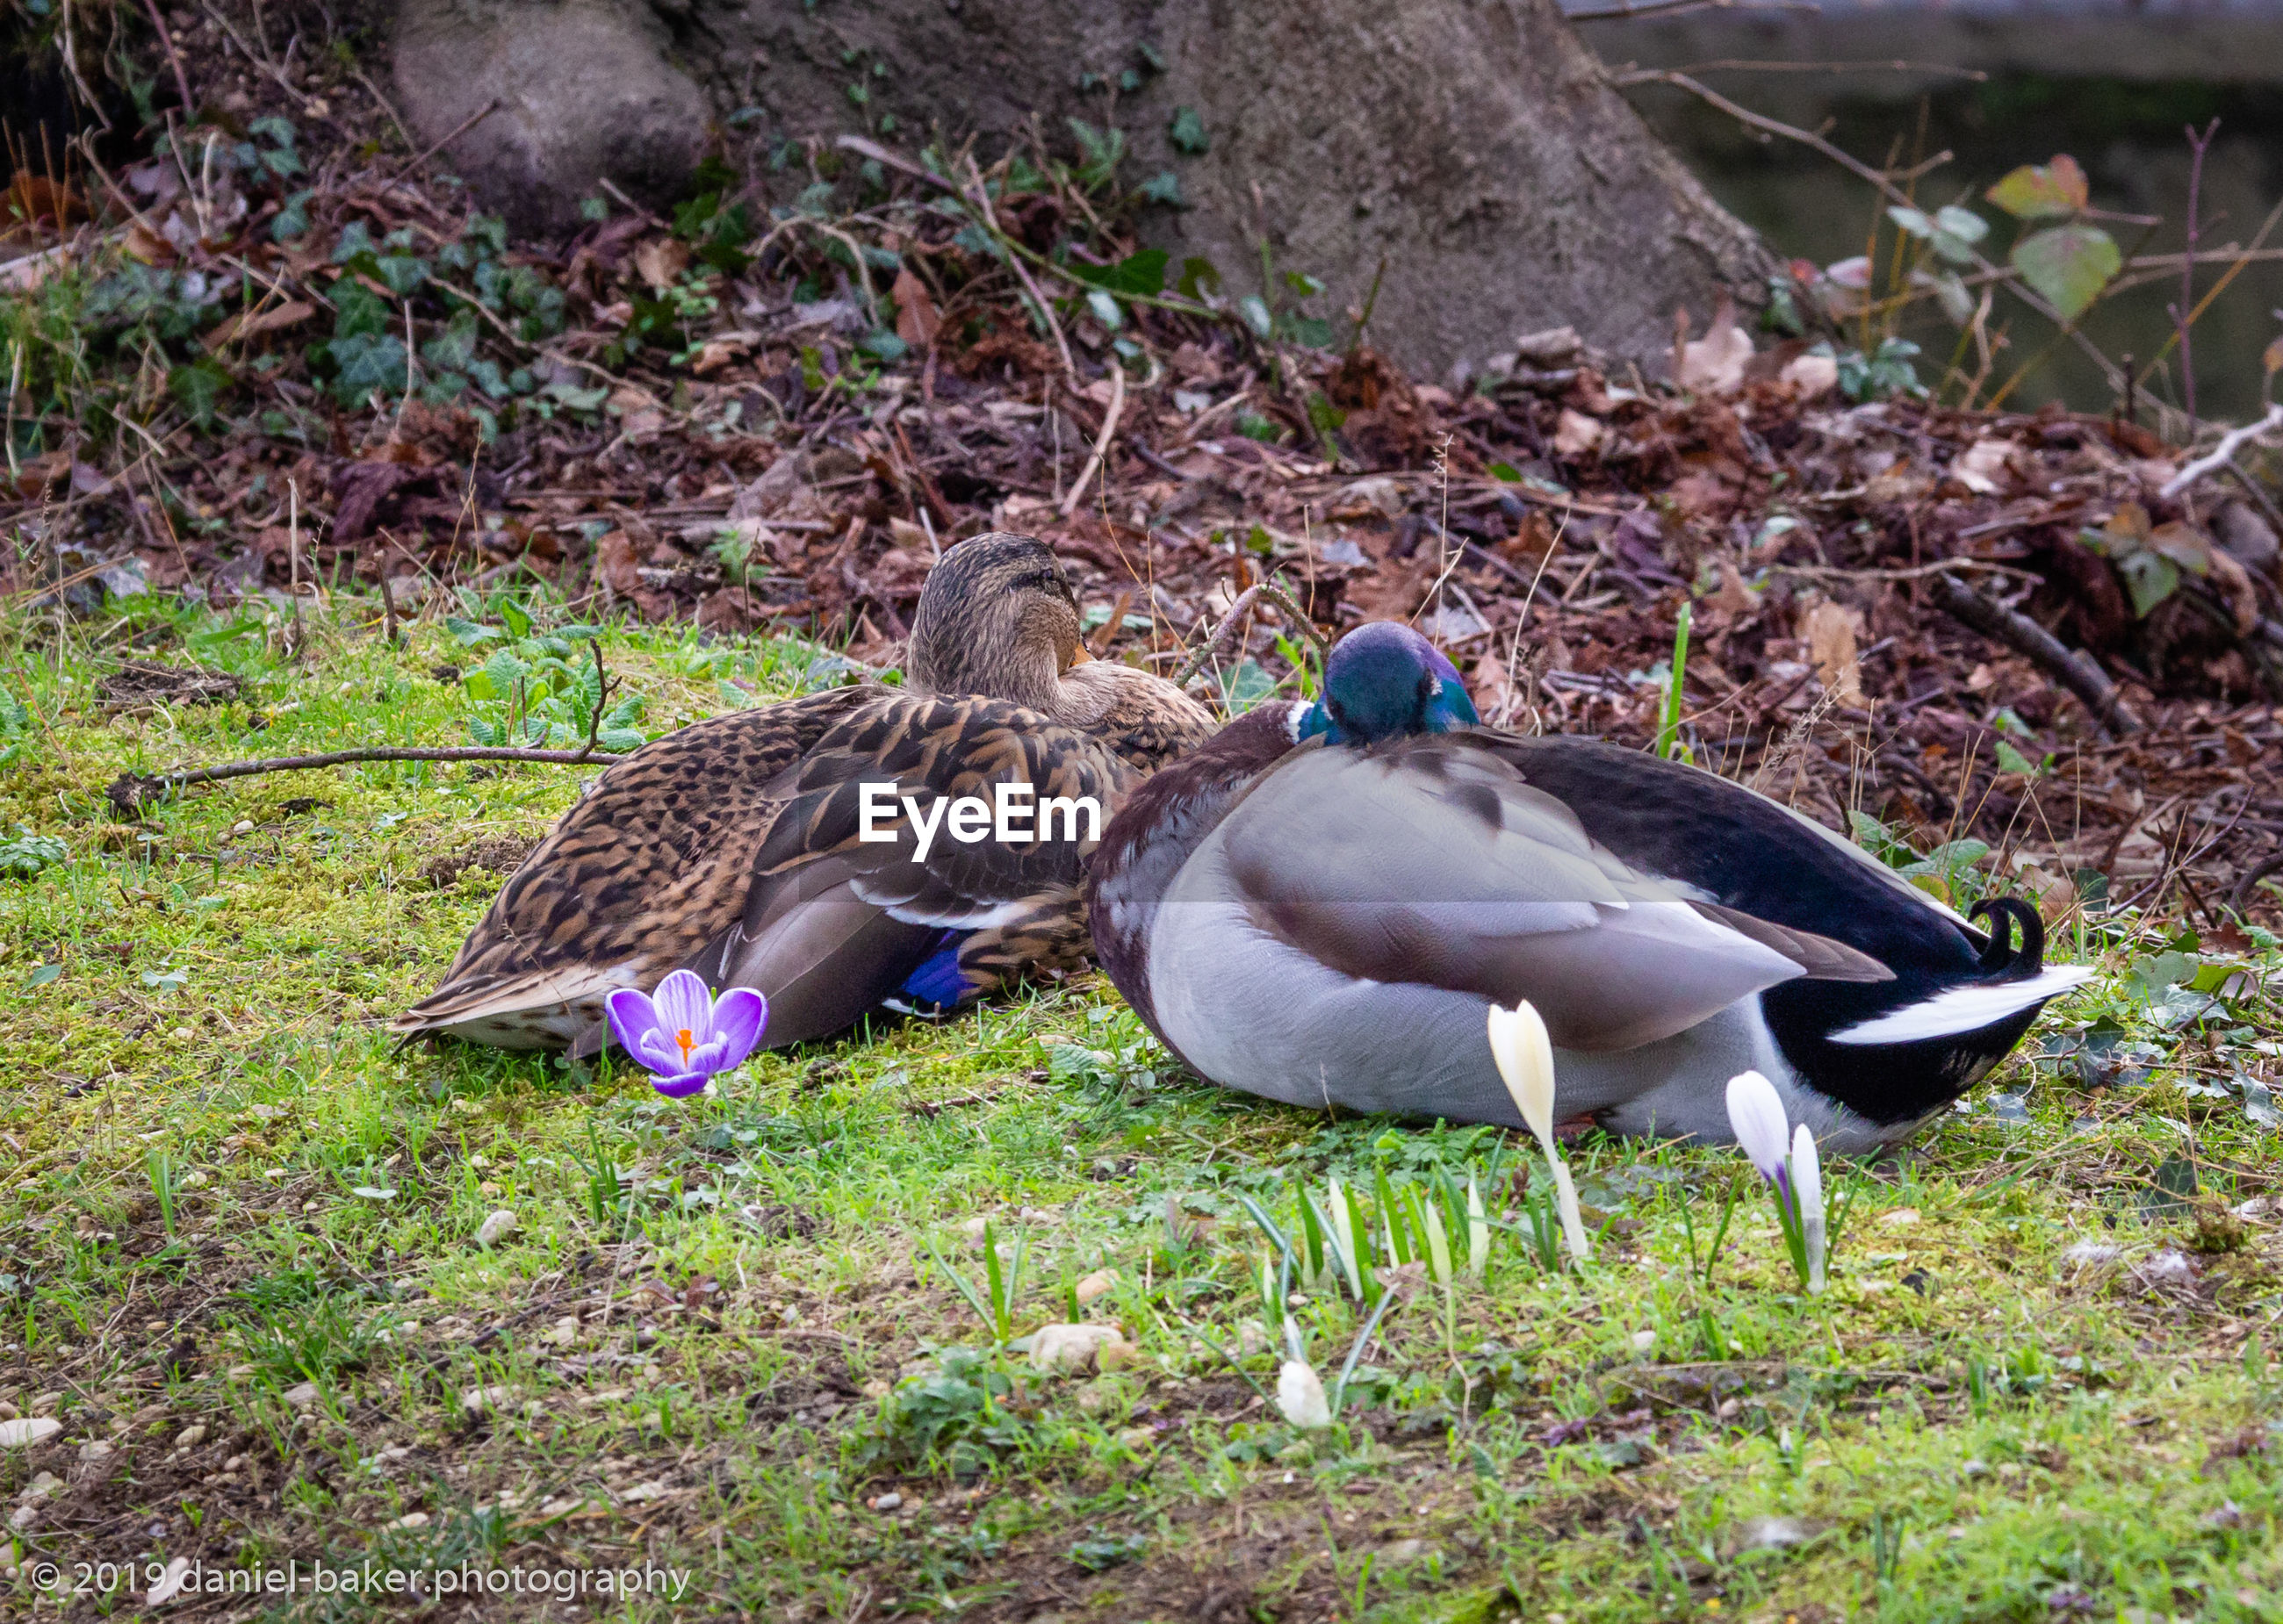 animal themes, animal, bird, animals in the wild, vertebrate, animal wildlife, land, group of animals, field, grass, plant, two animals, nature, day, no people, duck, poultry, young animal, togetherness, outdoors, animal family